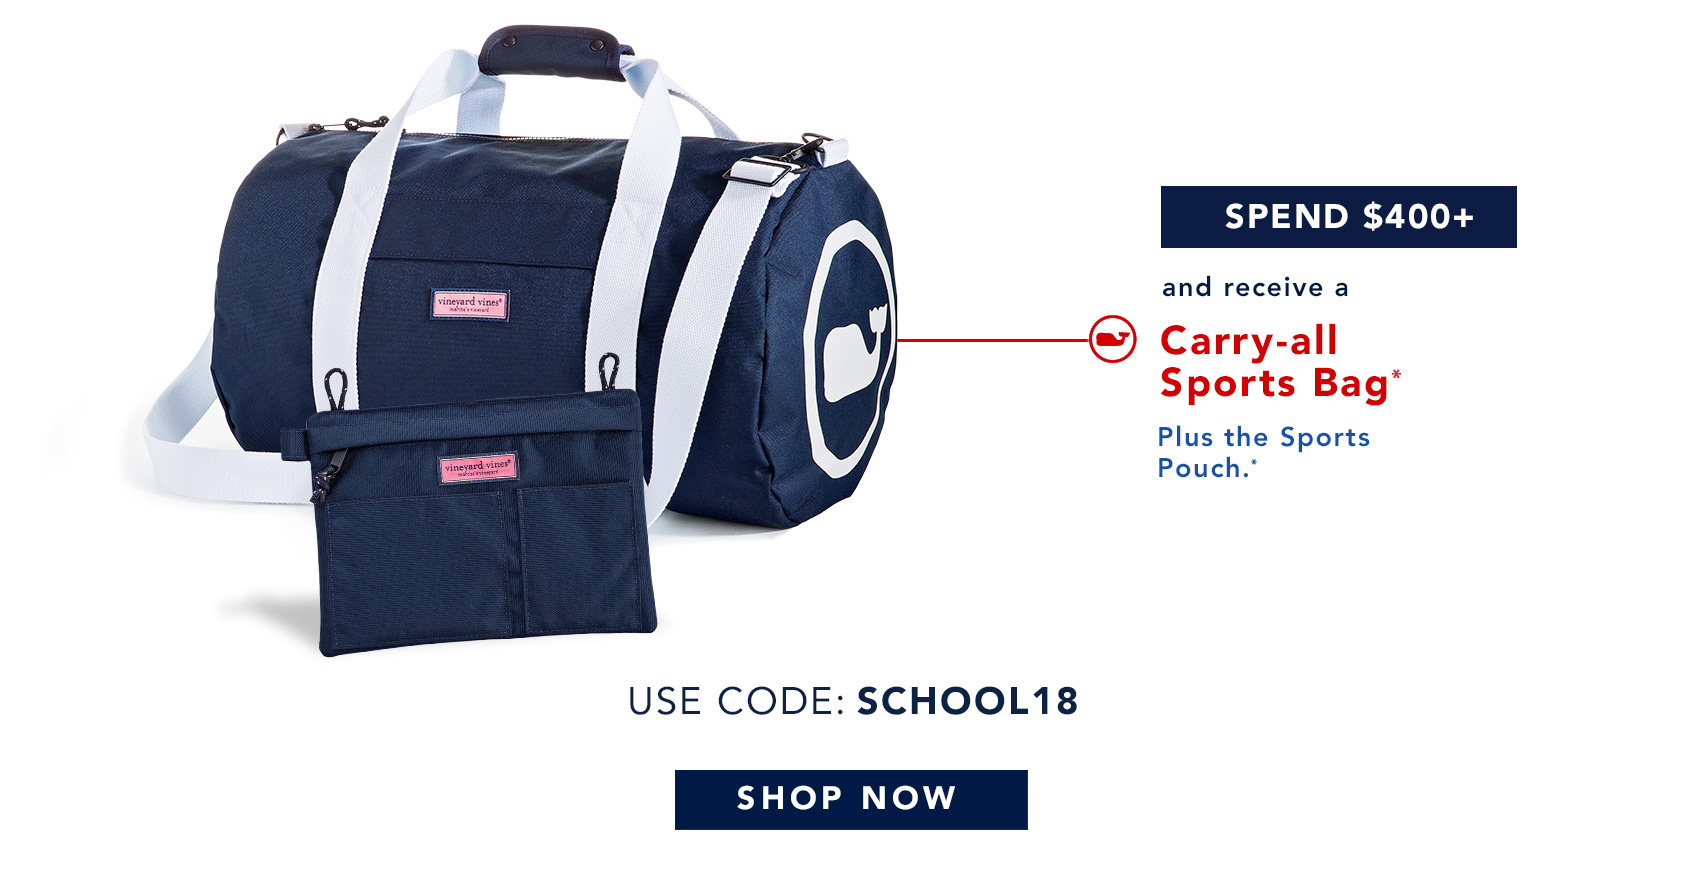 Spend $400+ and receive a Carry-all Sports Bag* Plus the Sports Pouch.